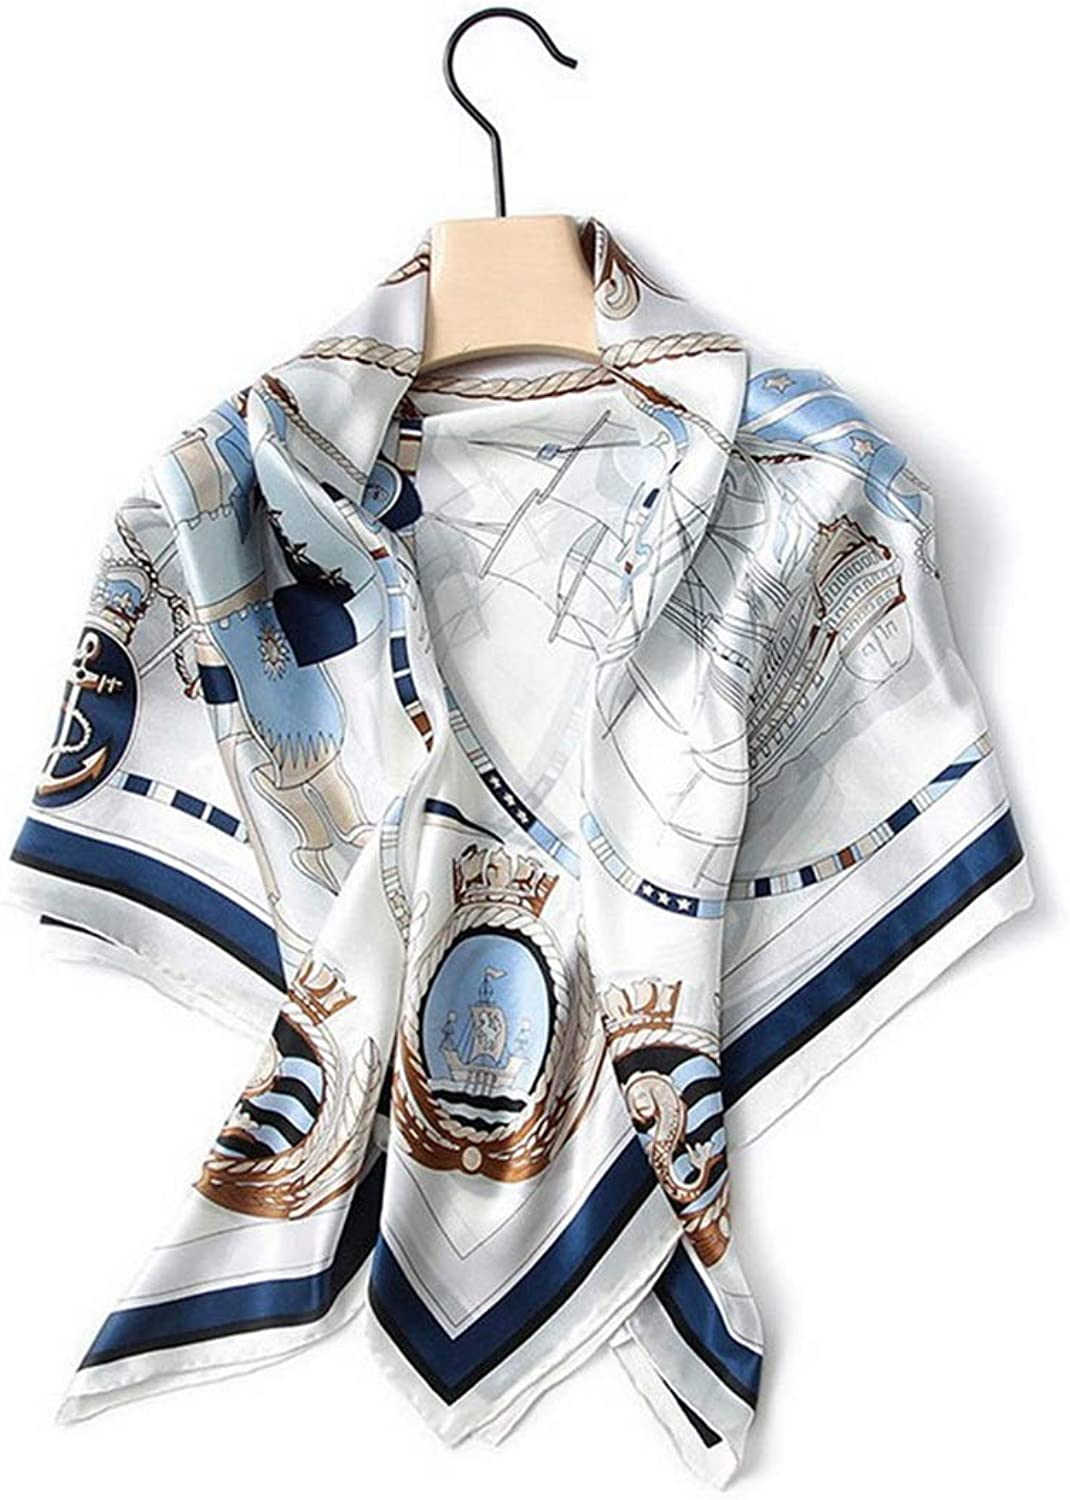 CEFULTY Exquisite Printed Ladies' Shawl Spring and Summer Seaside Sunscreen Silk Square Scarf (color   White)